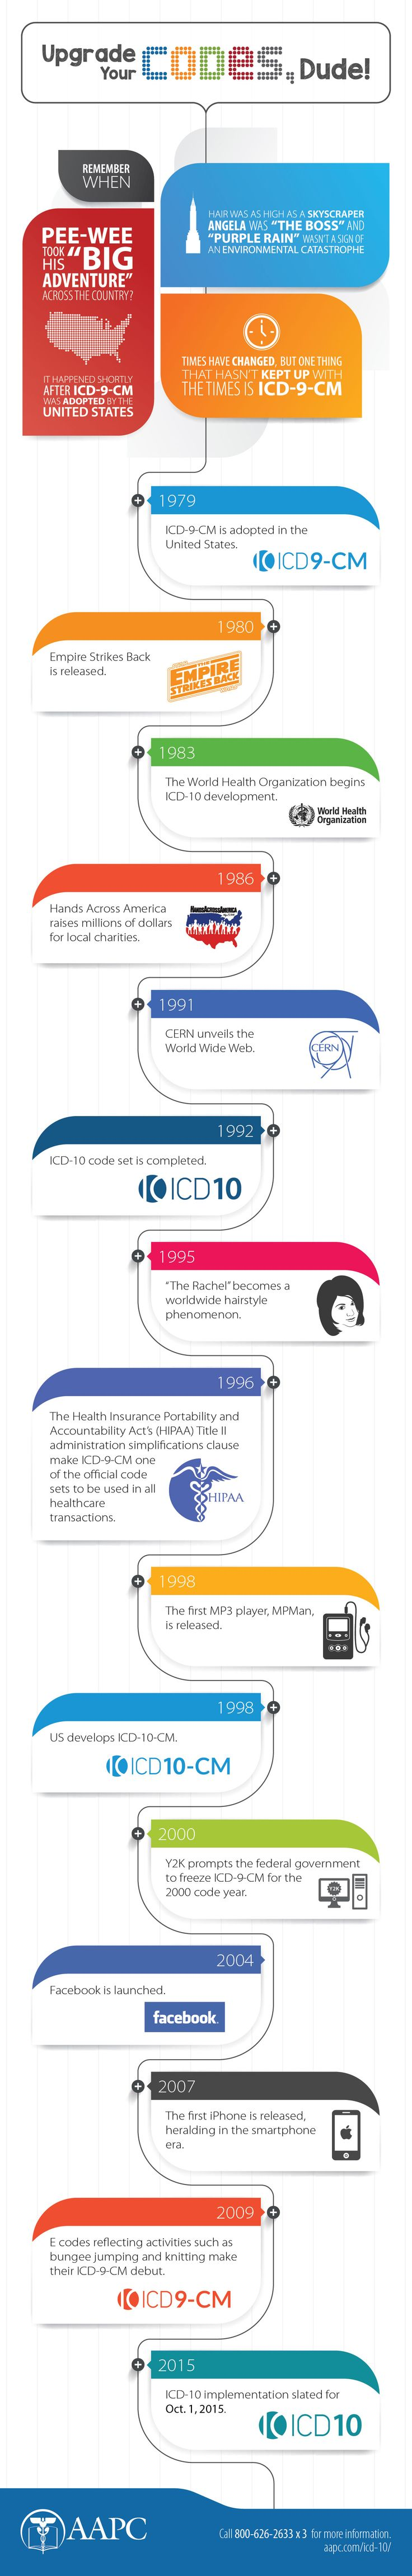 100 tips for icd 10 pcs coding - Ready For The Big Update To Medical Codes